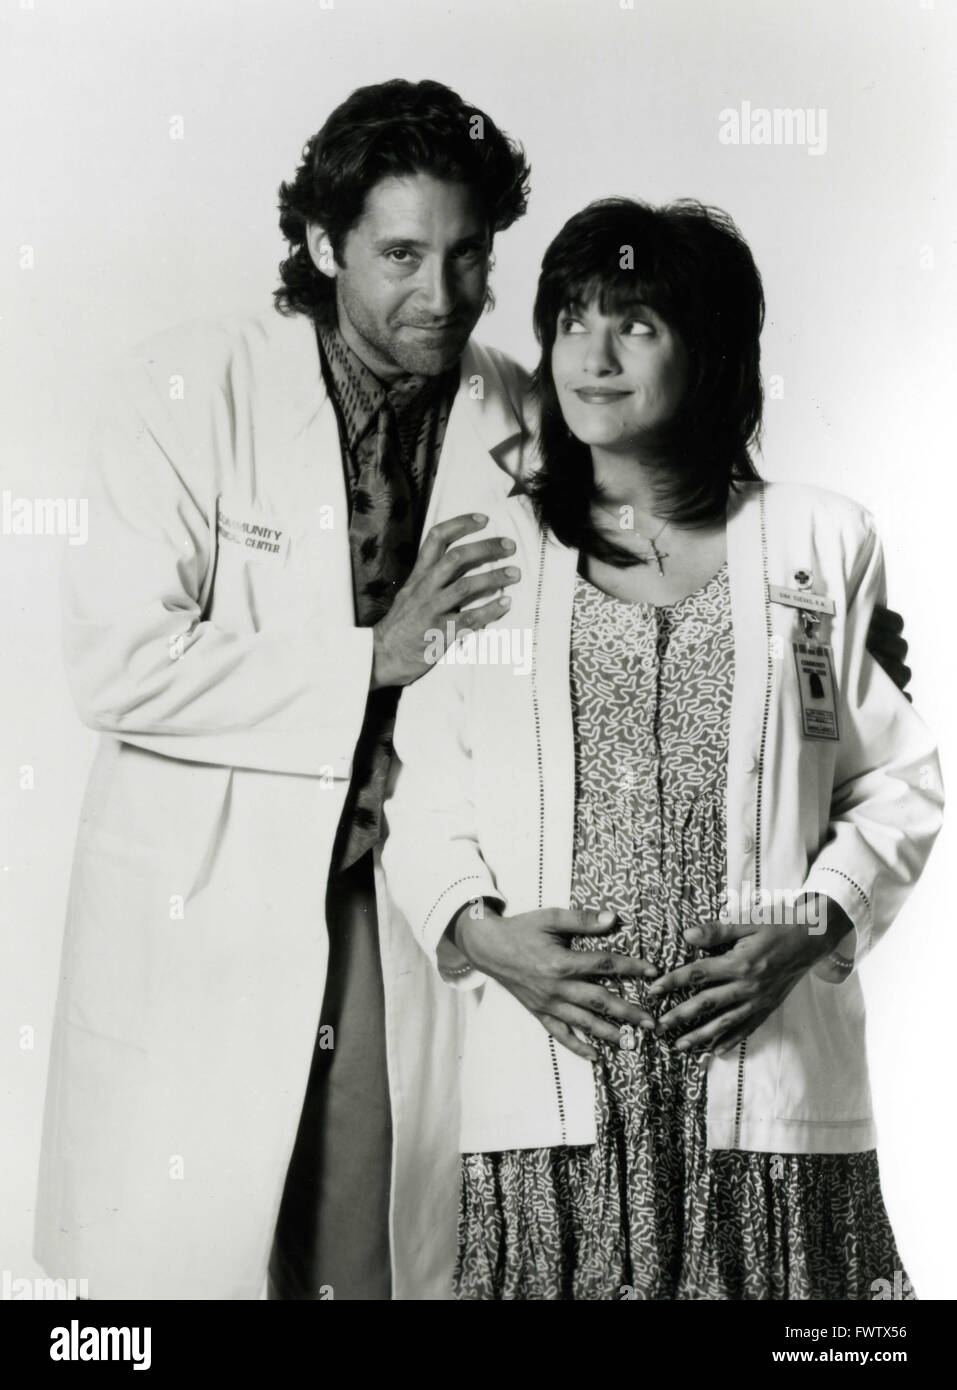 Kip Gilman and Ada Maris in the TV series Nurses, USA 1993 - Stock Image